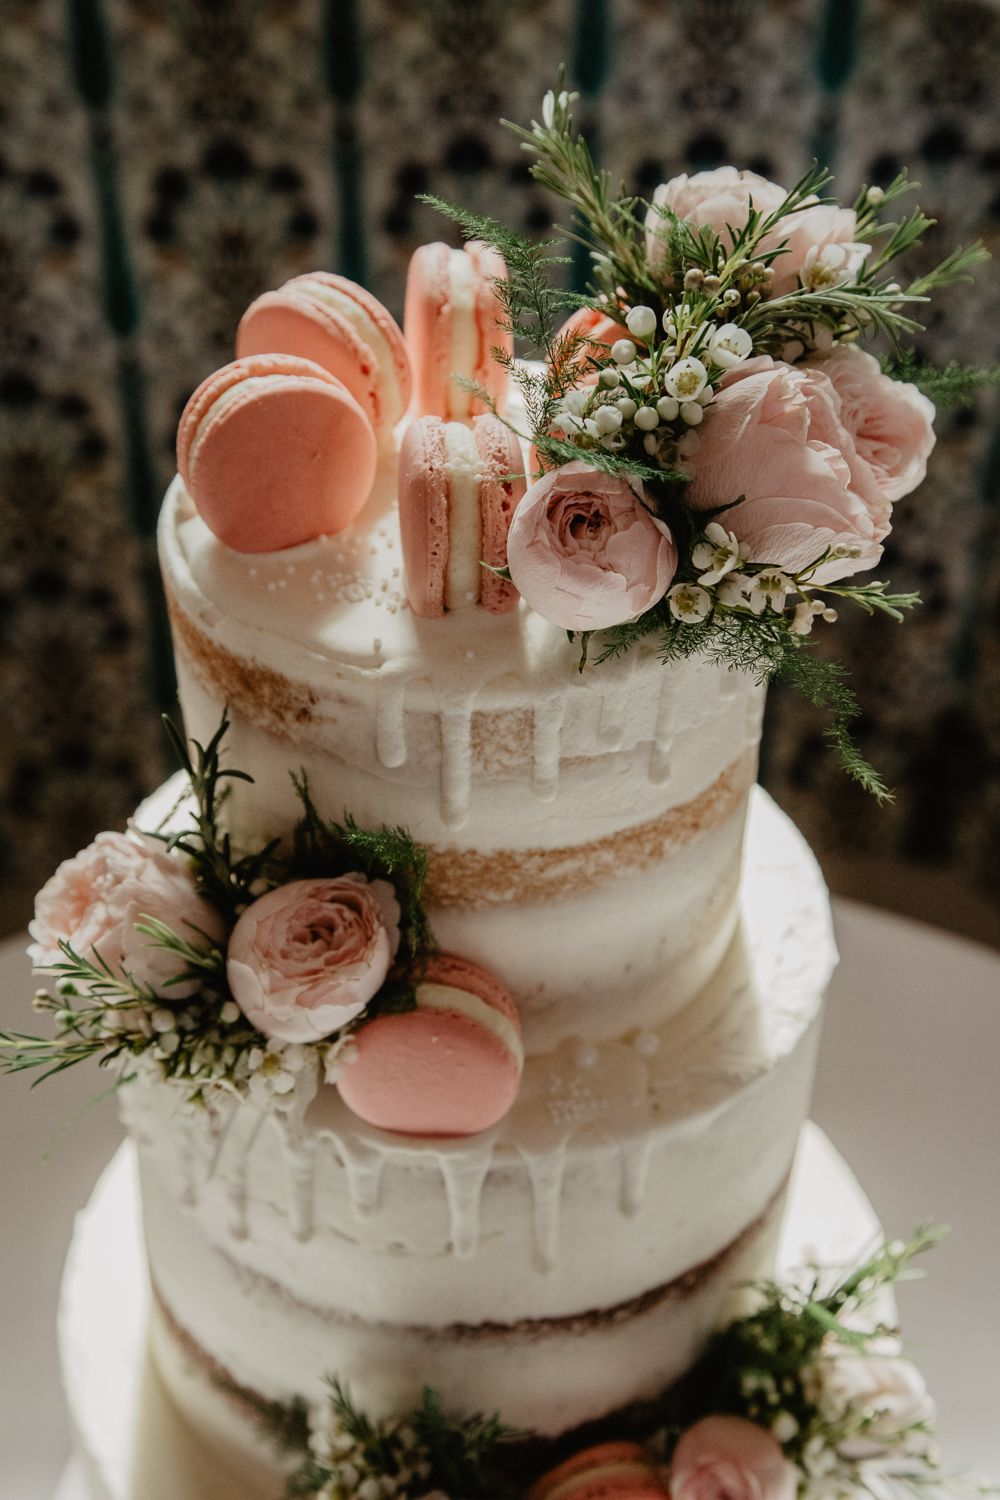 sweet pink drip and semi naked wedding cake with with macarons